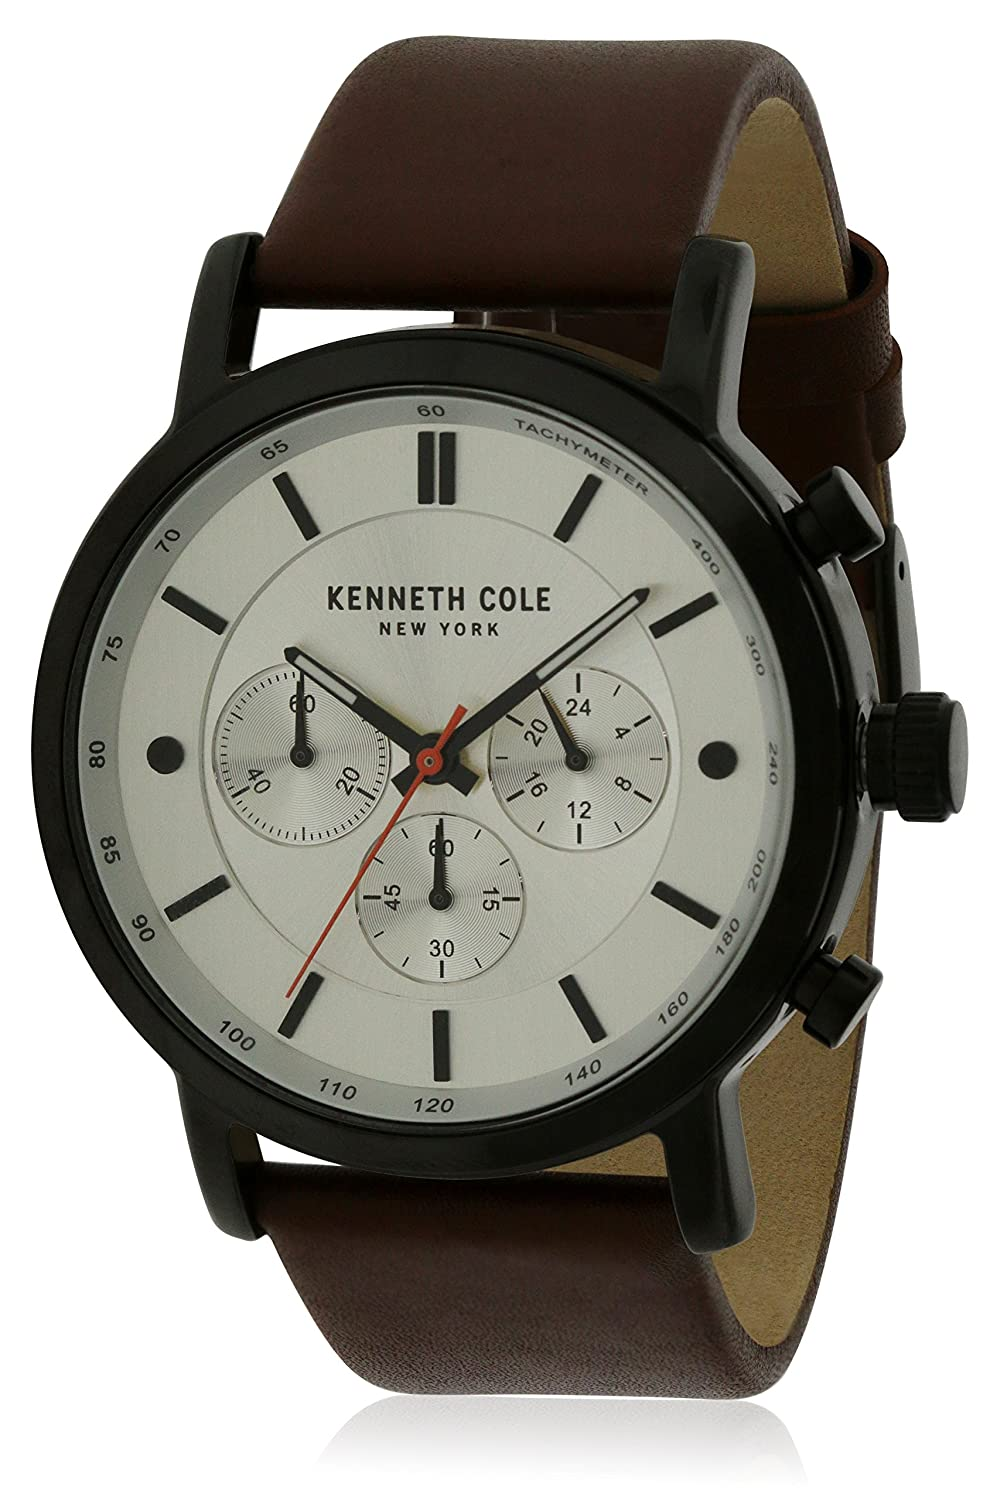 Kenneth Cole Leather Mens Watch kc50502001 B07DPXNZSX